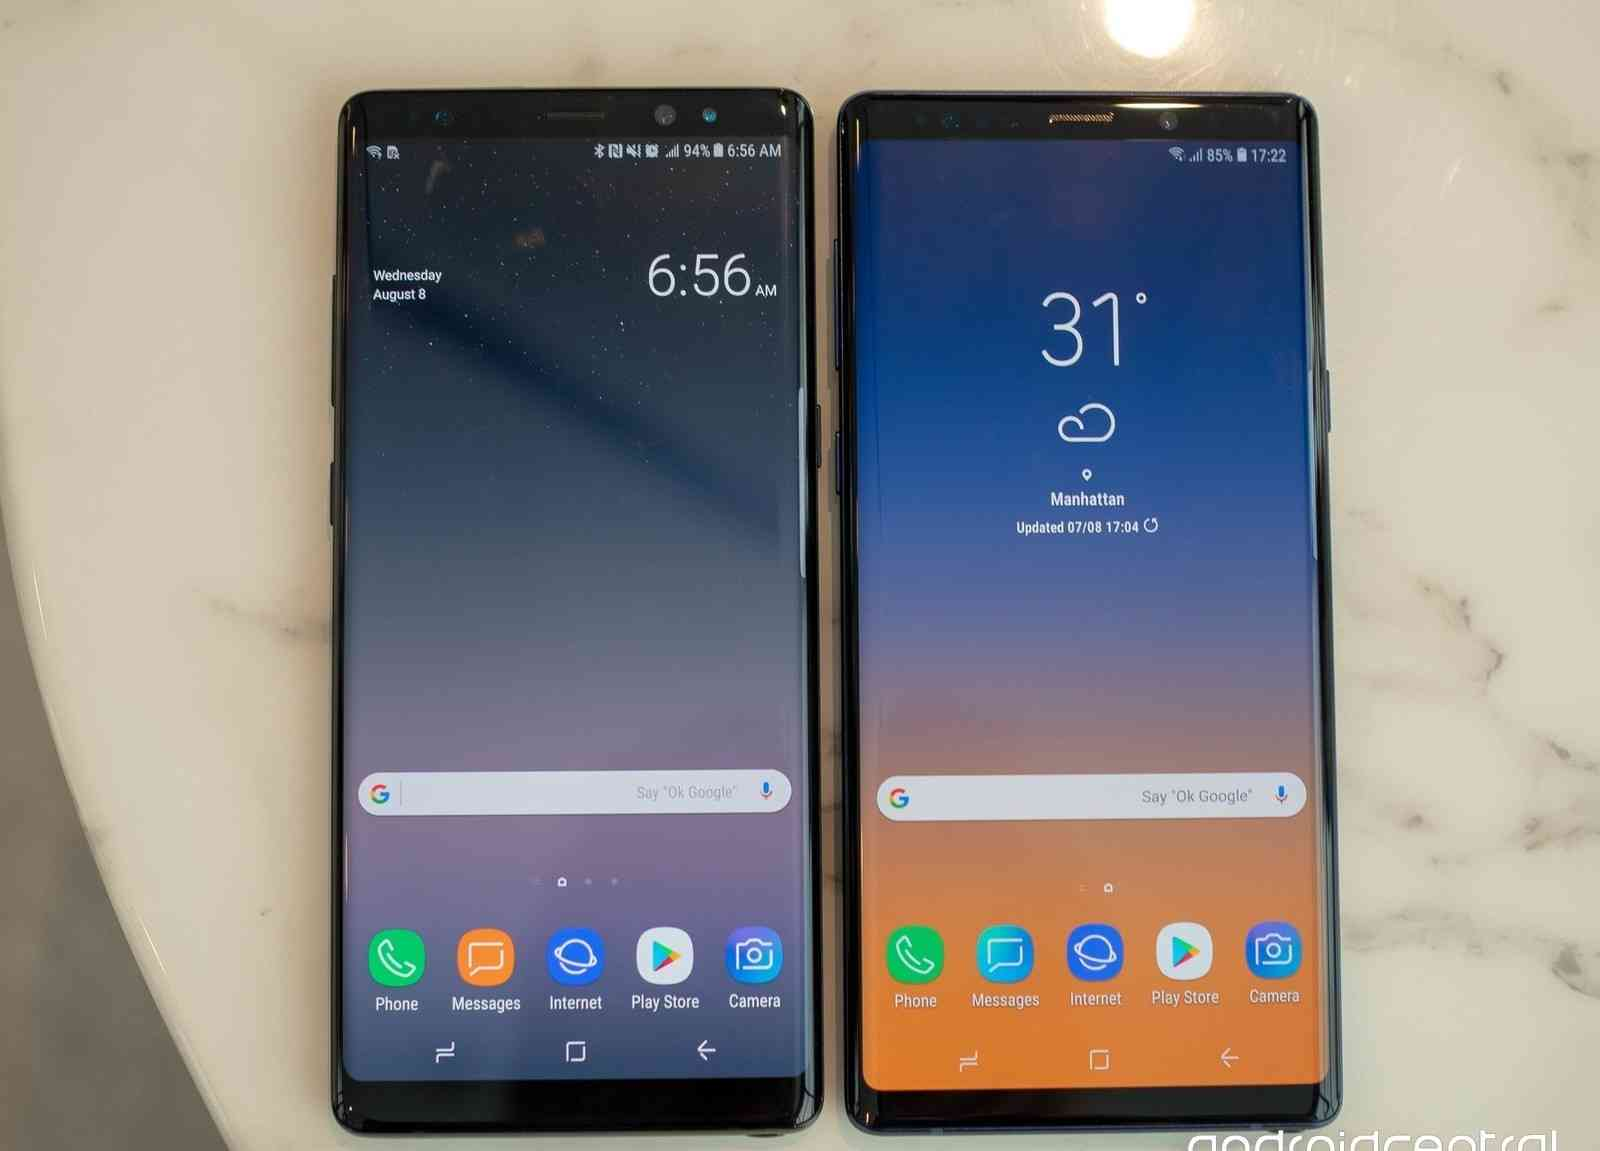 The Samsung Galaxy Note 9 Vs The Galaxy Note 8 dimensions